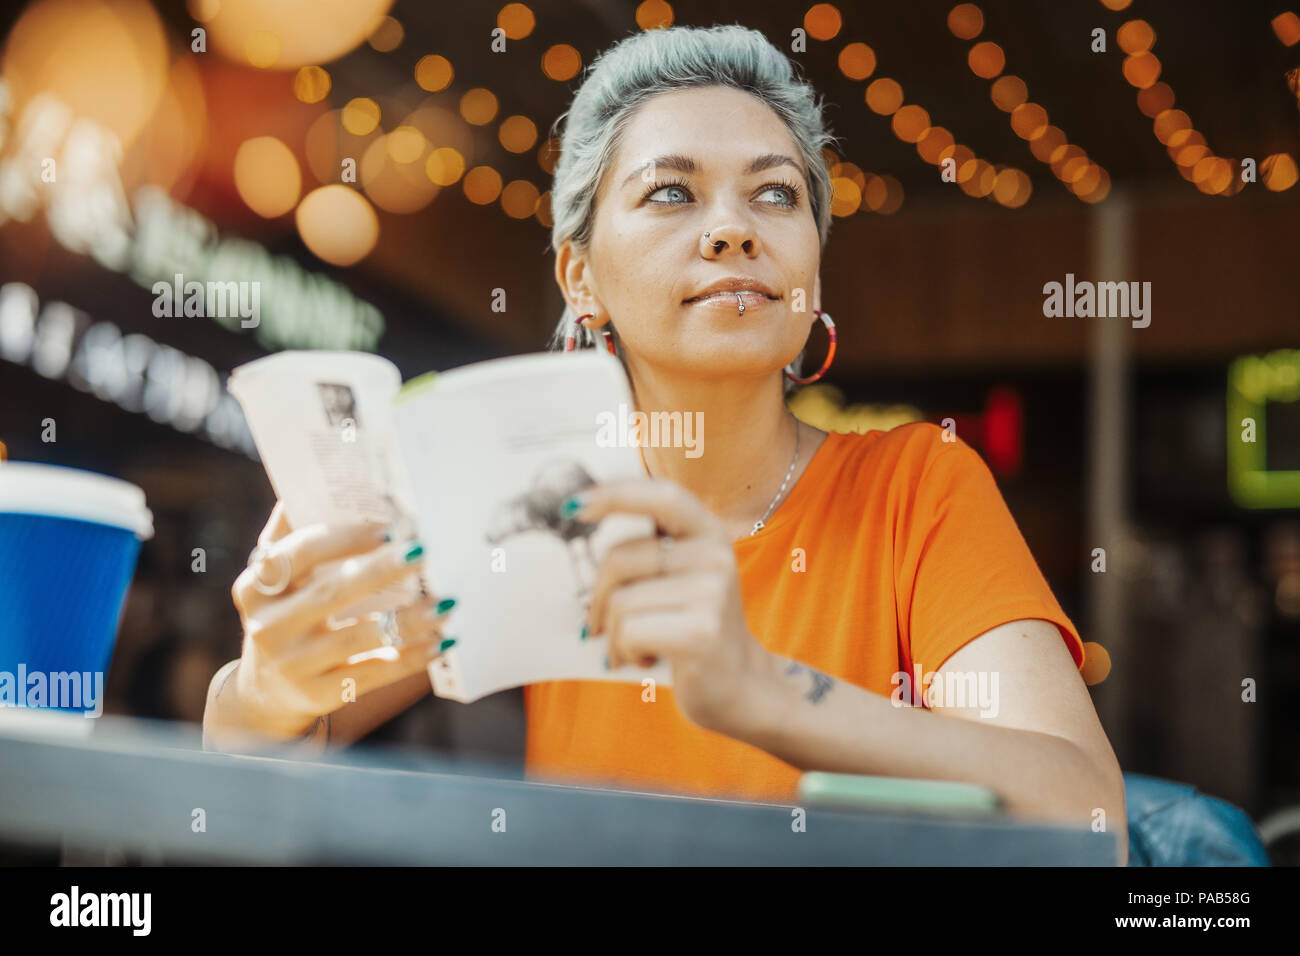 Attractive blonde girl reading book at cafe - Stock Image